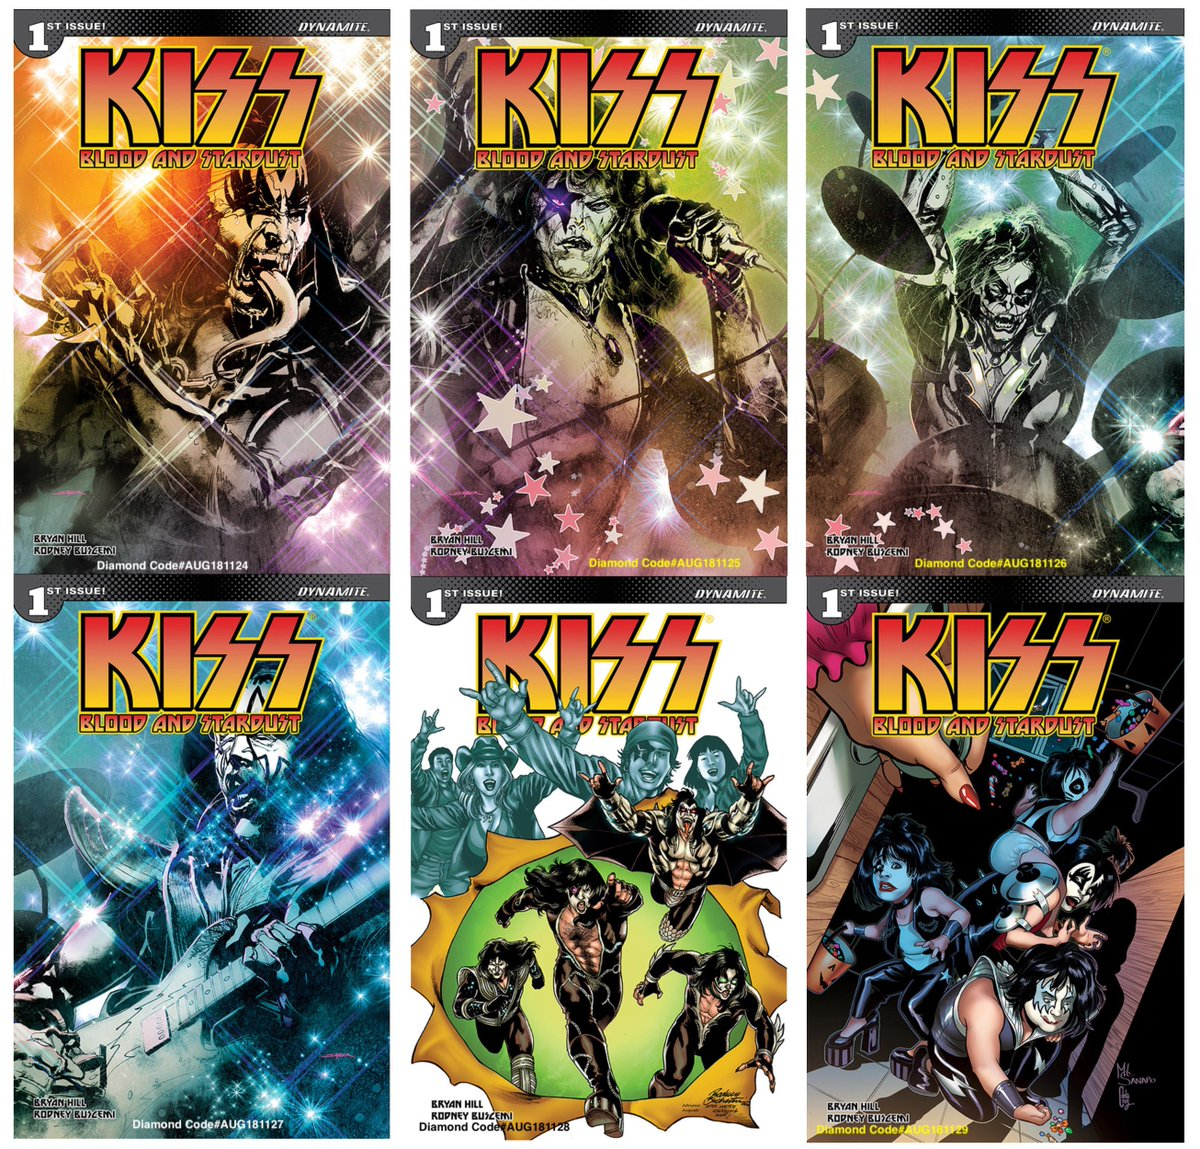 Dynamite Fans Preorder KISS:Blood & Stardust #1 now from your LCS The deadline to preorder is tomorrow, 8/18 Well help w/Attached covers & Diamond Order Codes @bryanedwardhill @KISSOnline AUG181124 @StuartSayger has 4 ...25 ...26 ...27 AUG181128 @RodBuchemi AUG181129 @MLSanapo